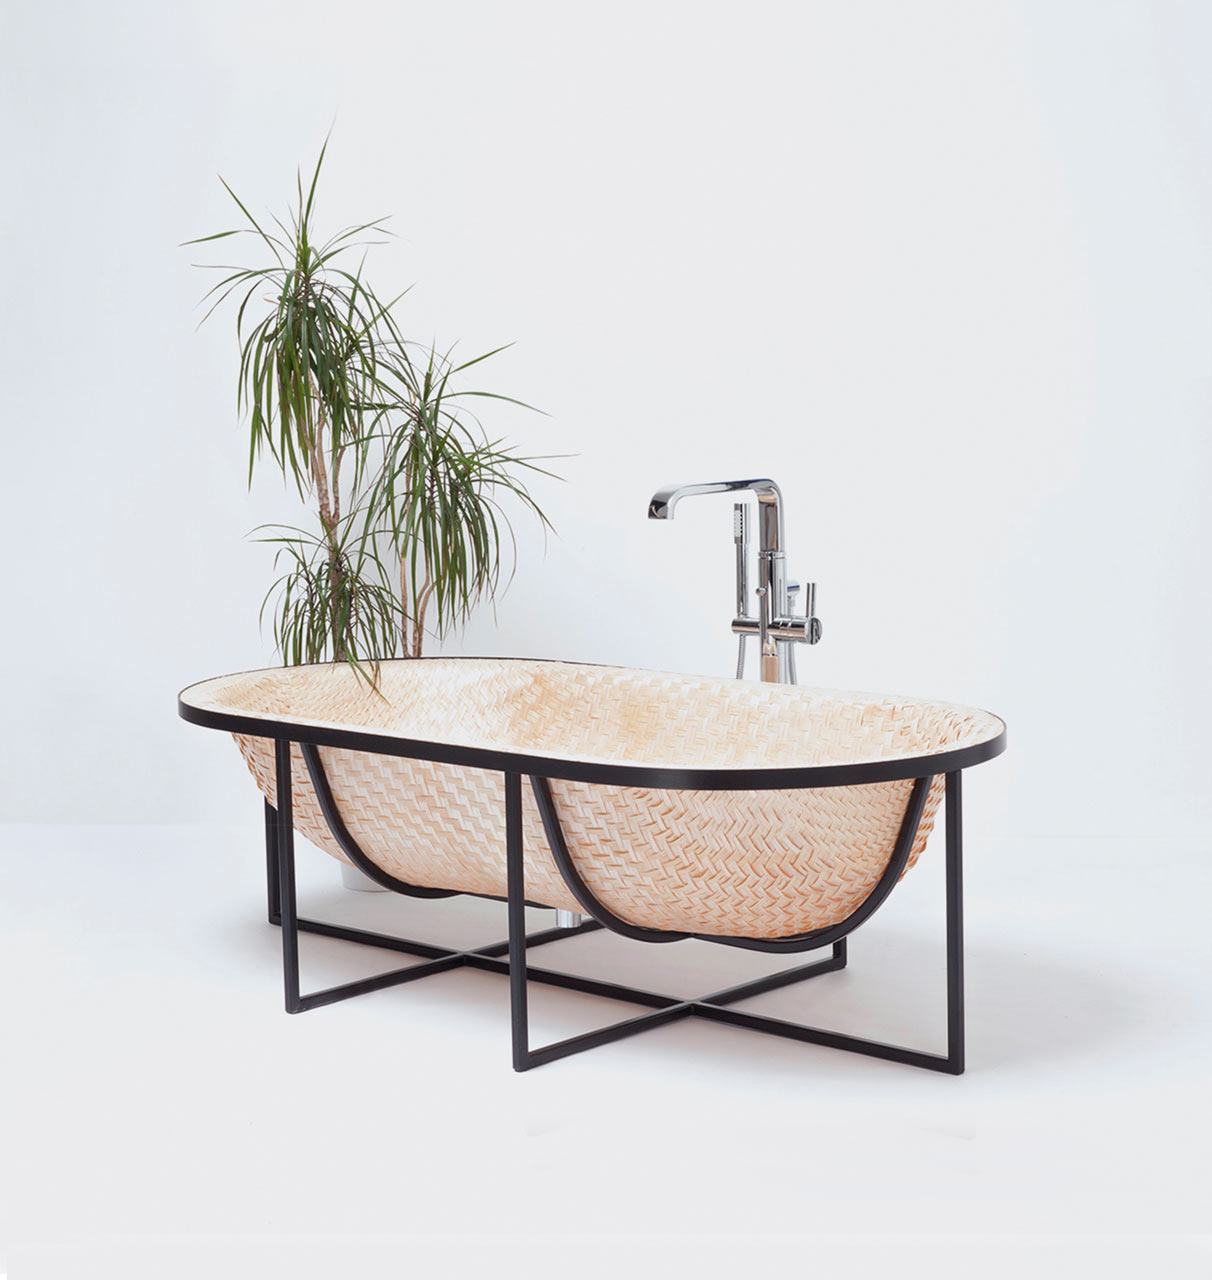 A Bathtub Inspired By Traditional Asian Boat Building Techniques ...